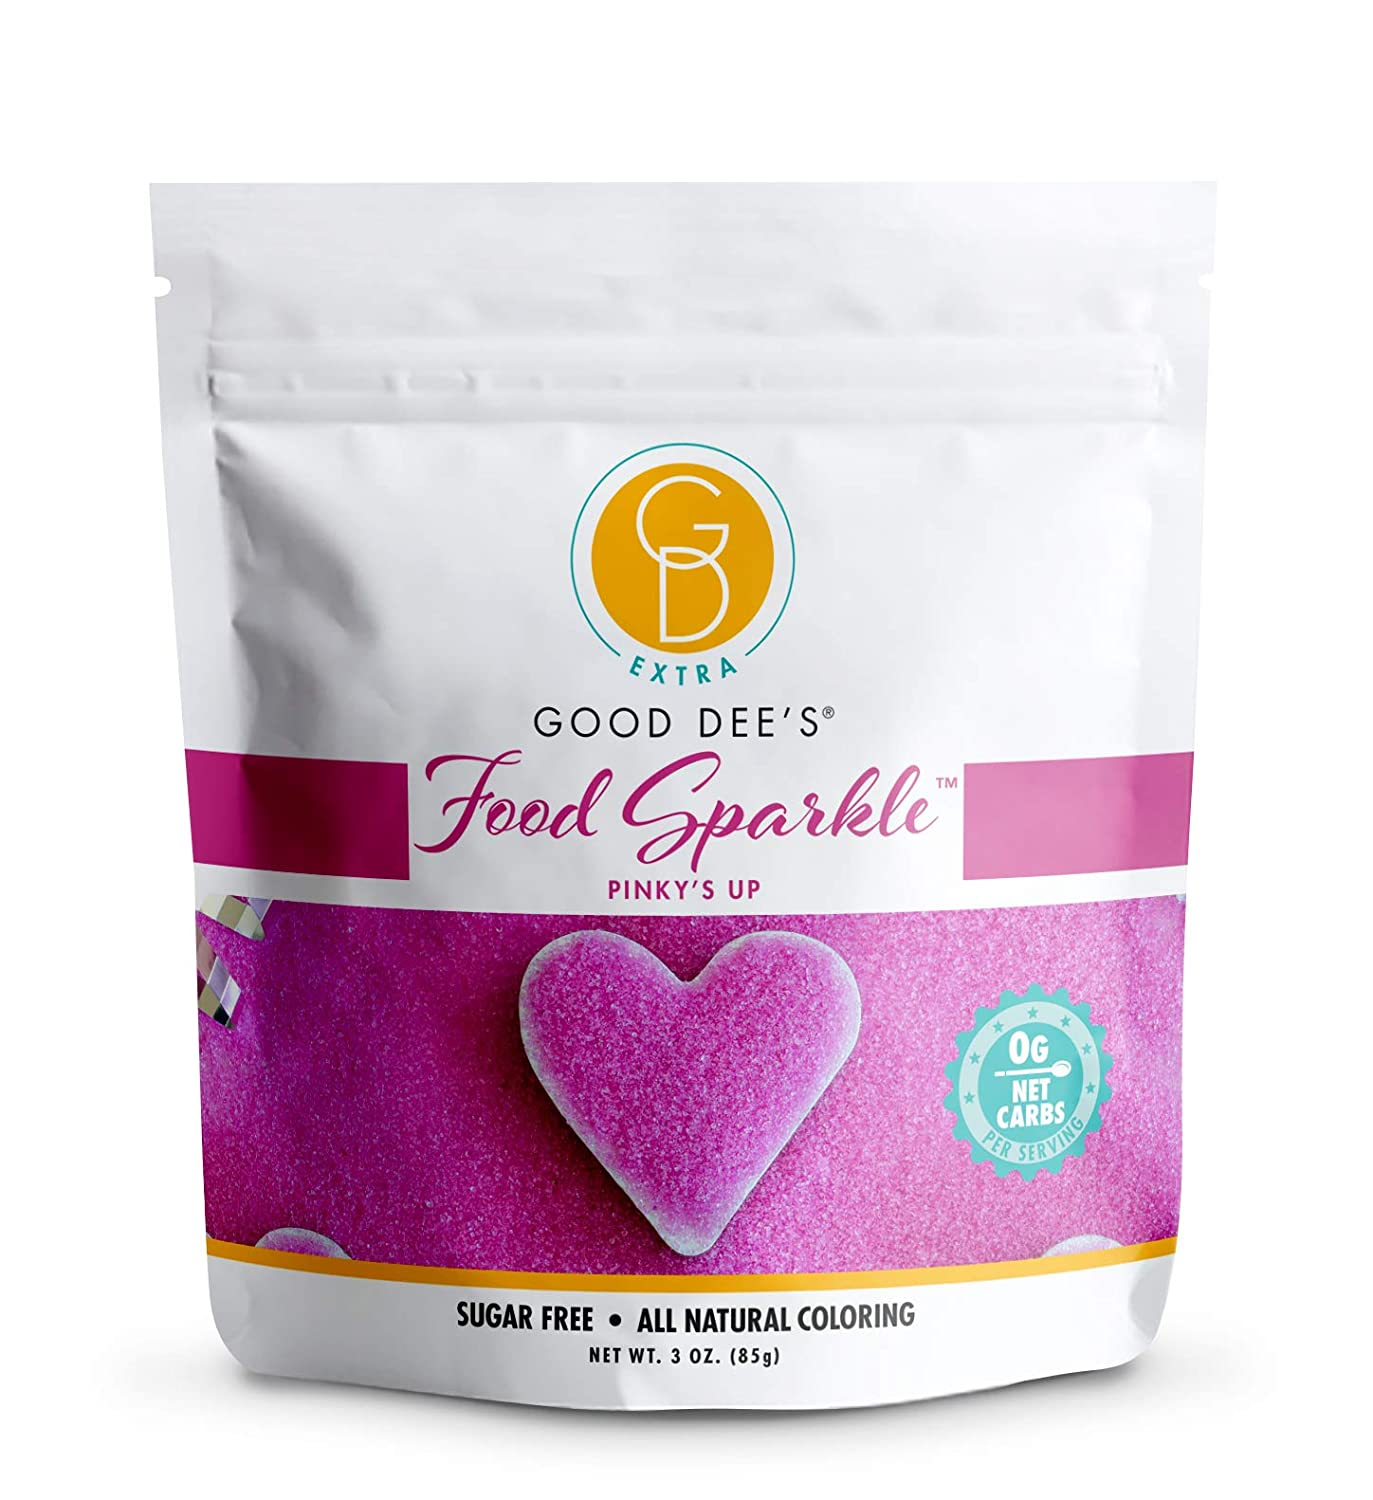 Good Dee's Food Sparkle Pinky's Up - All Natural Coloring & Sugar Free Food Glitter (0 Net Carbs) | Gluten Free Edible Dust For Desserts, Ice Cream And Cakes | Keto Friendly